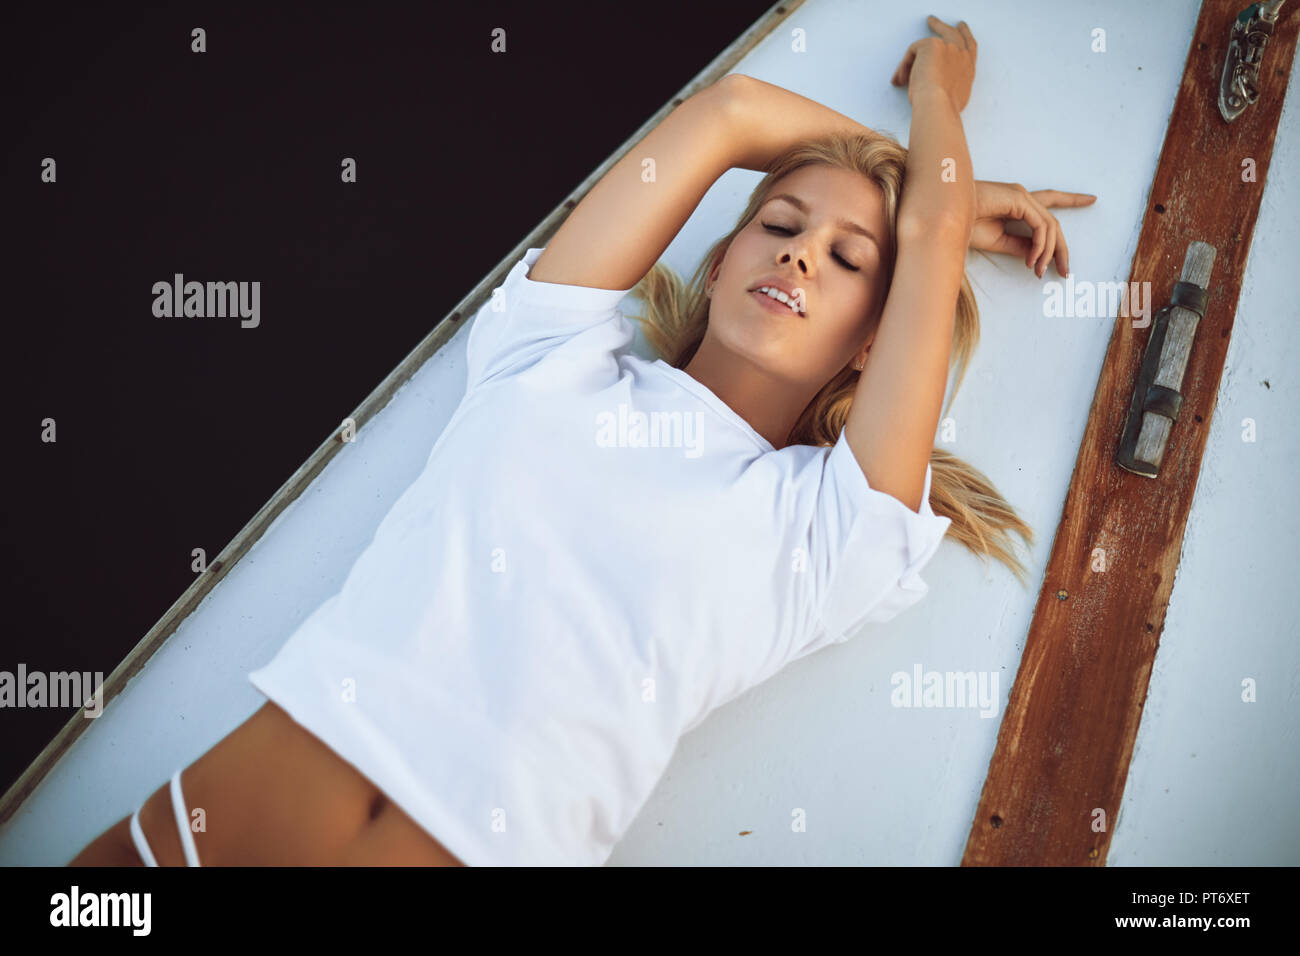 Attractive young woman in a bikini bottom and shirt suntanning while lying with her eyes closed on the deck of a yacht - Stock Image